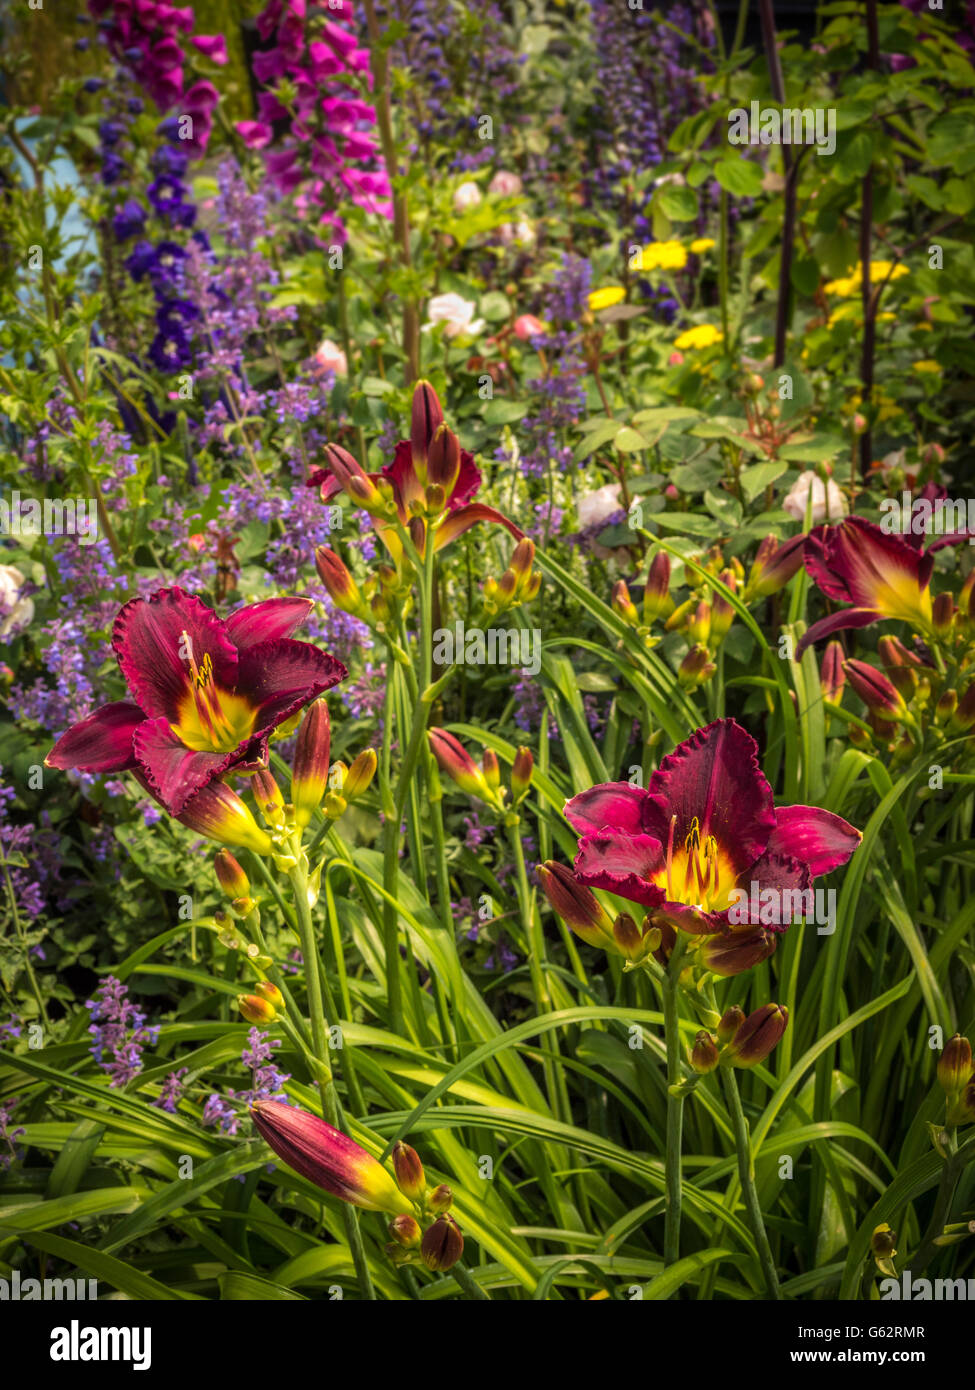 Lilies in flowerbed - Stock Image